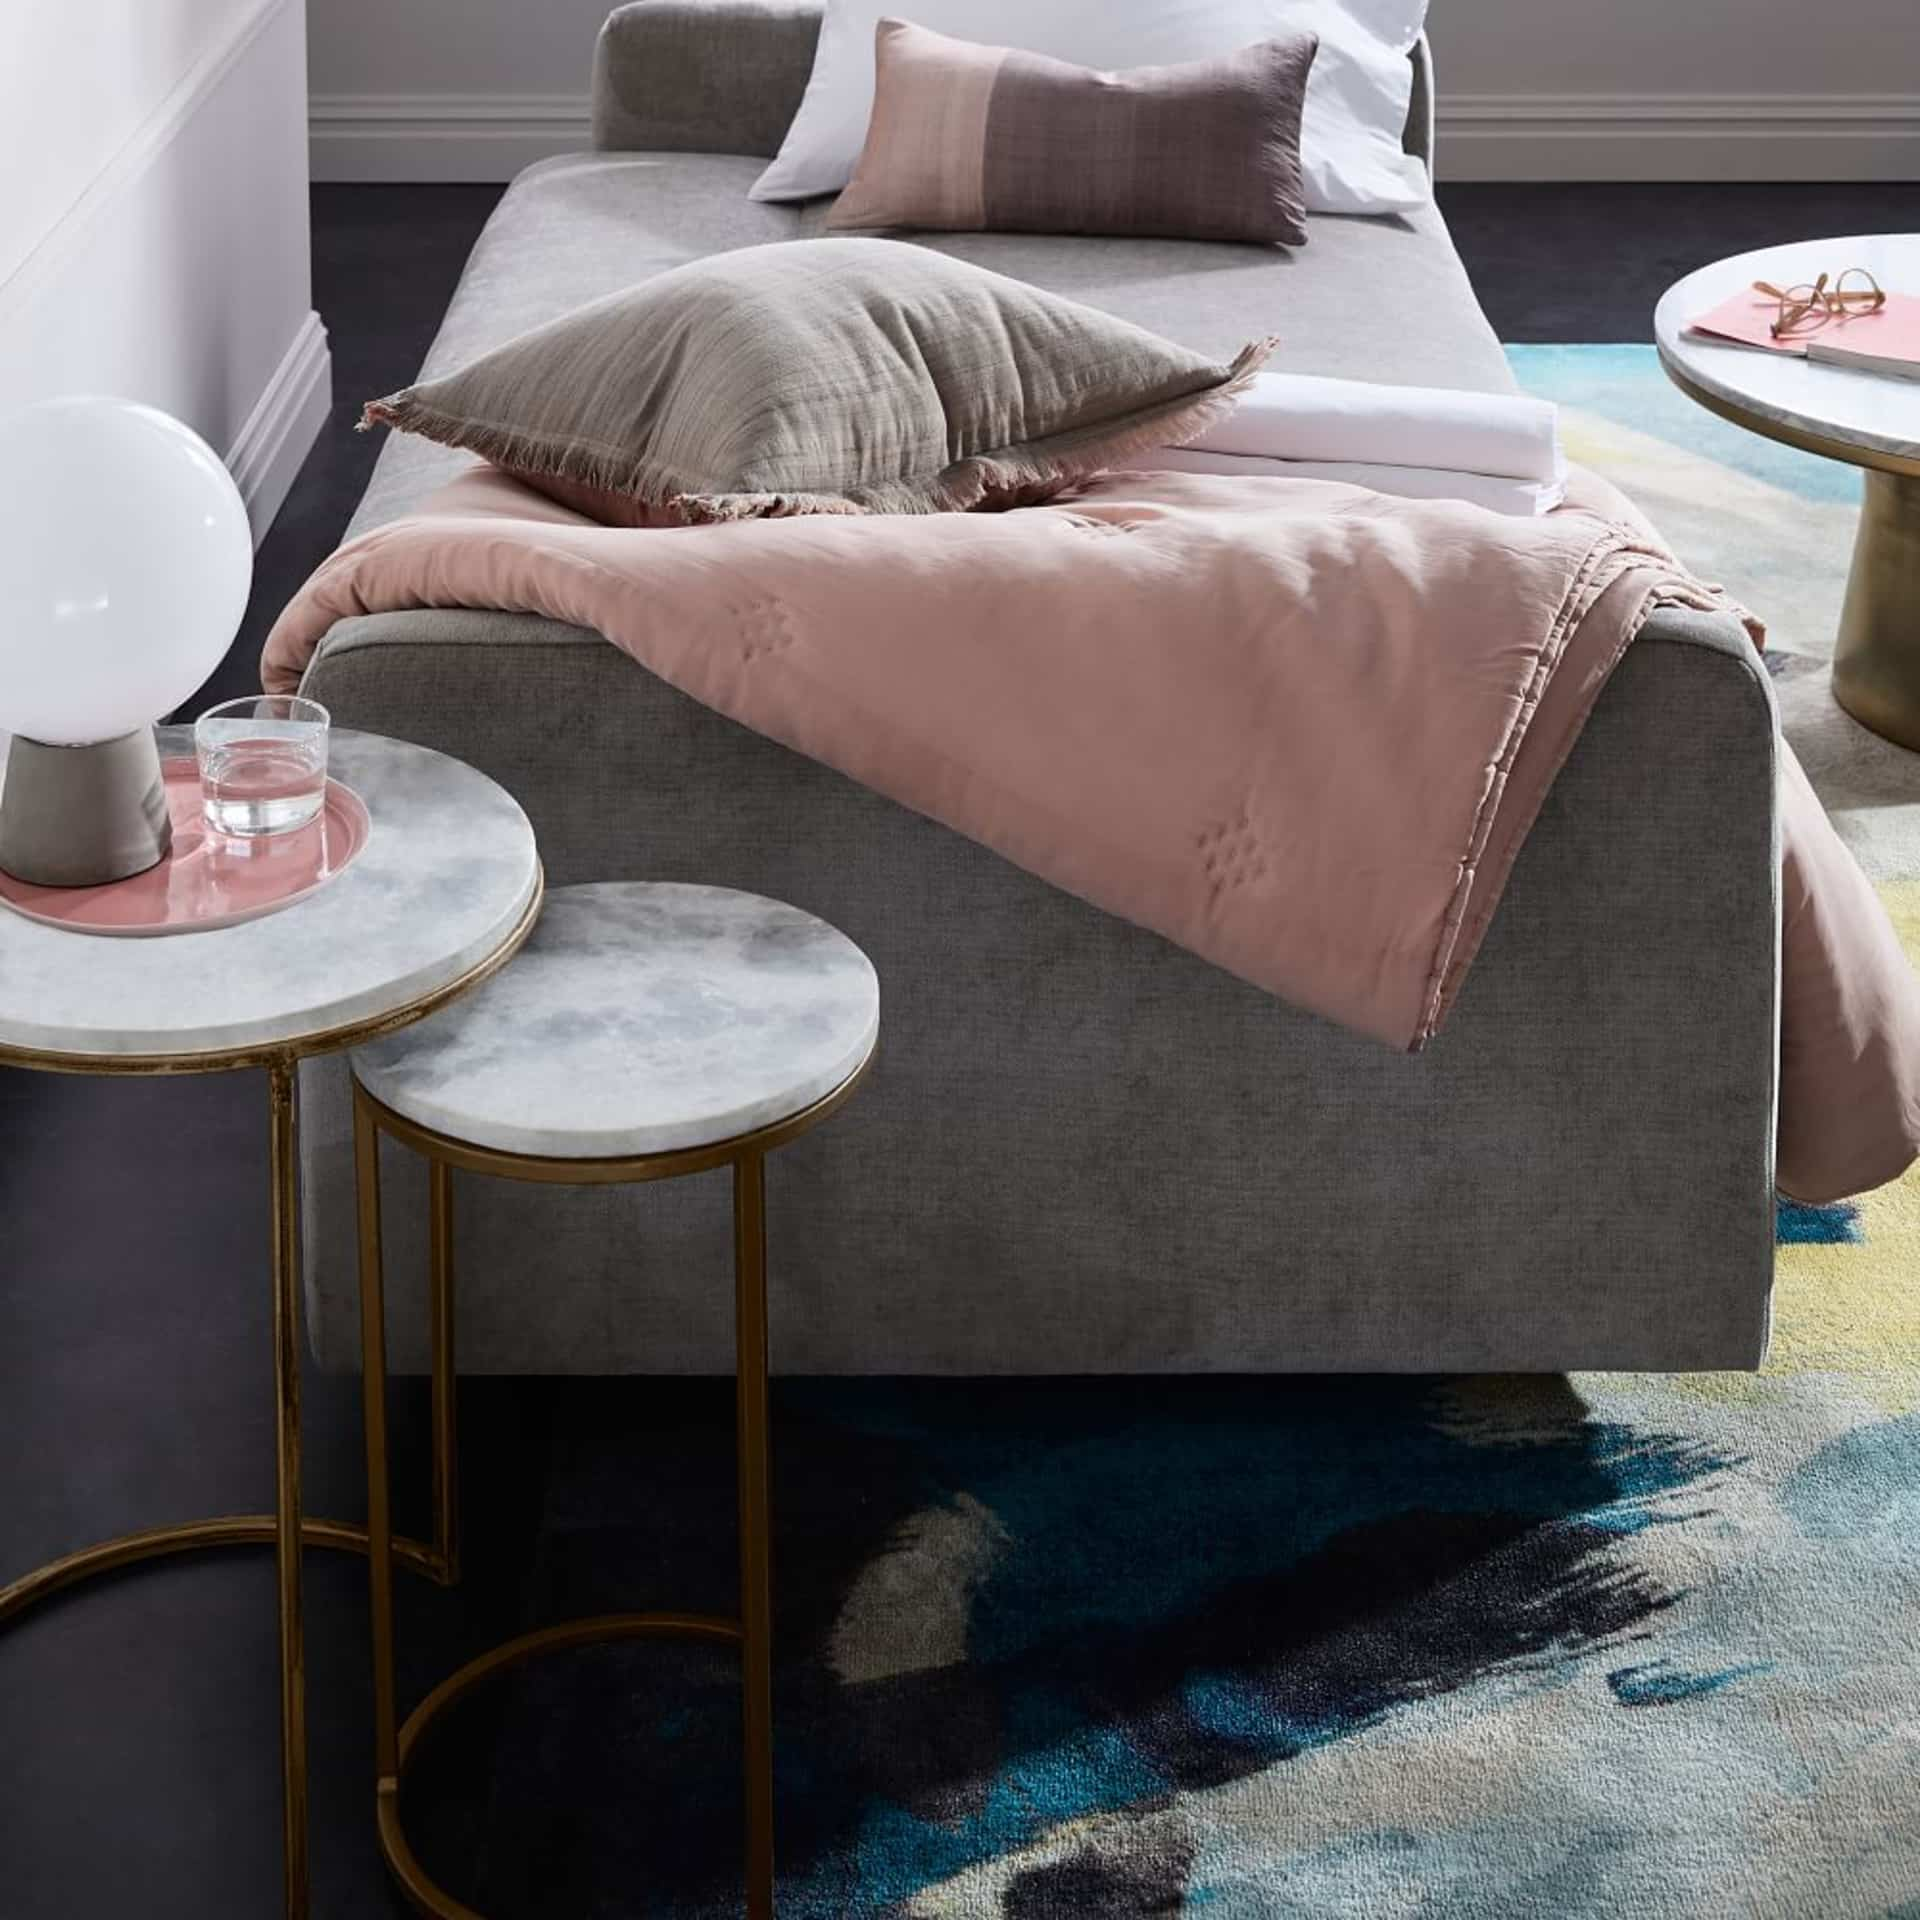 Marble Side Table for Modern Interior Design: Complement Your Home. Gray velour sofa and the marble top nesting table near